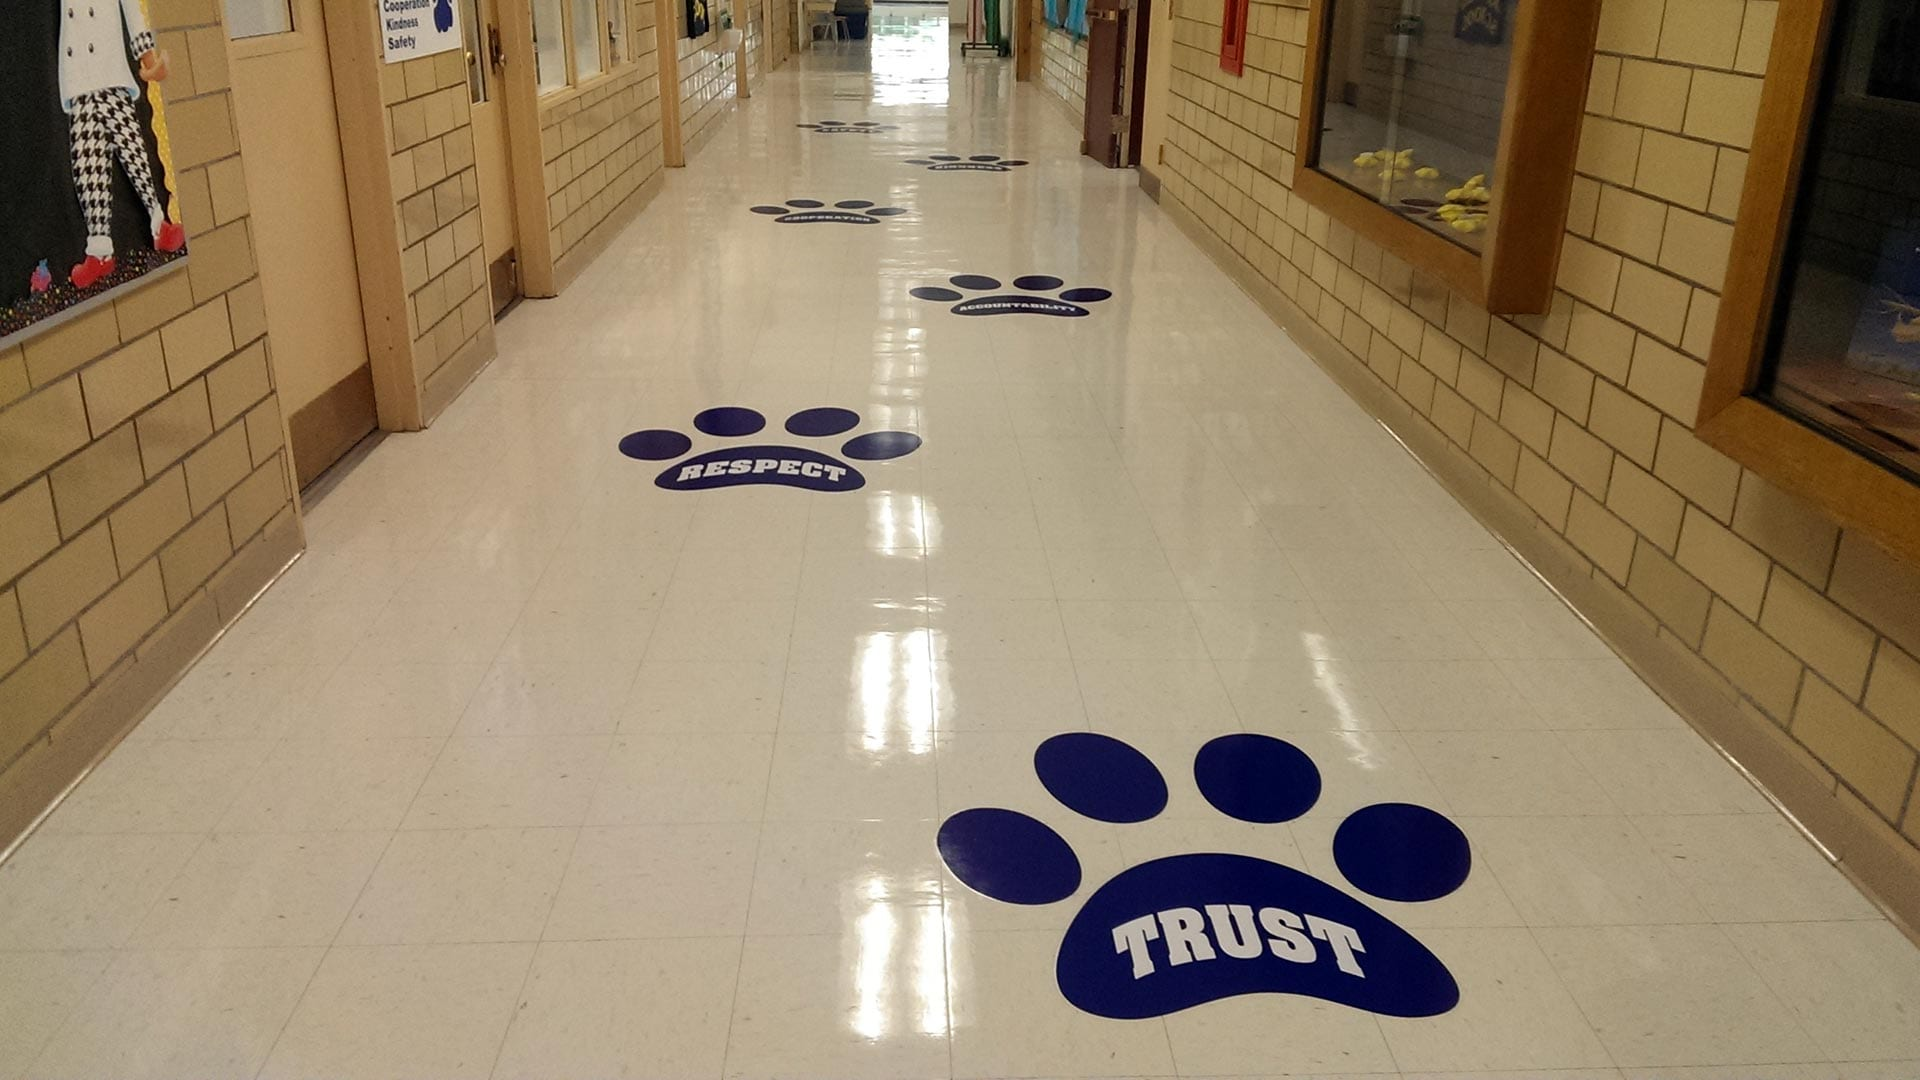 Floor graphics for a school